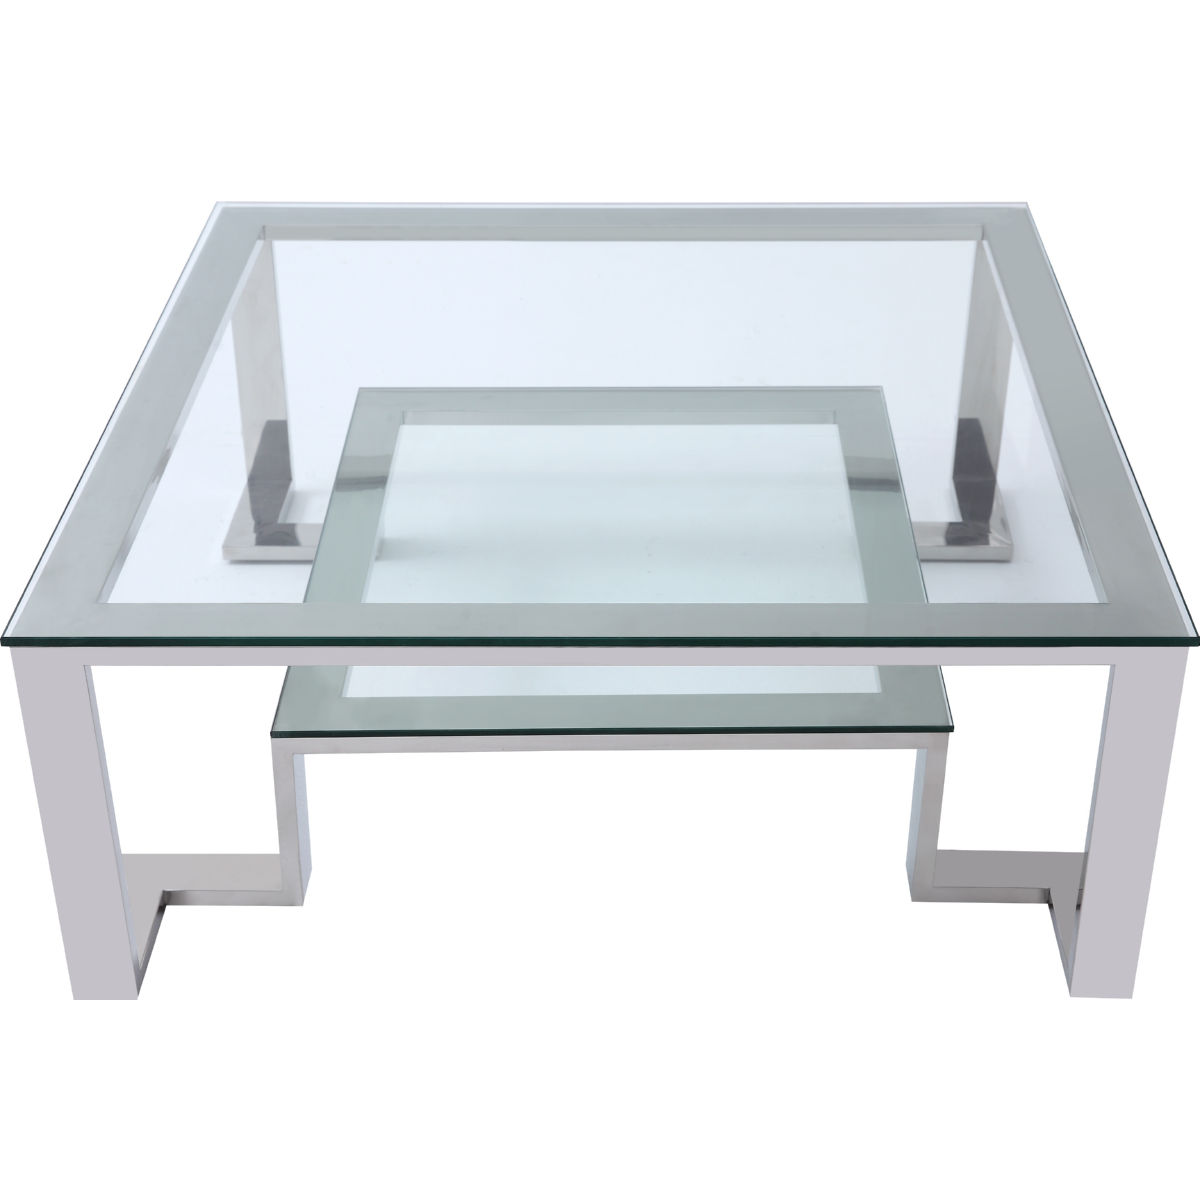 Square Coffee Table Glass Top.Fab Square Coffee Table W Glass Top On Stainless Steel Base By Whiteline Imports